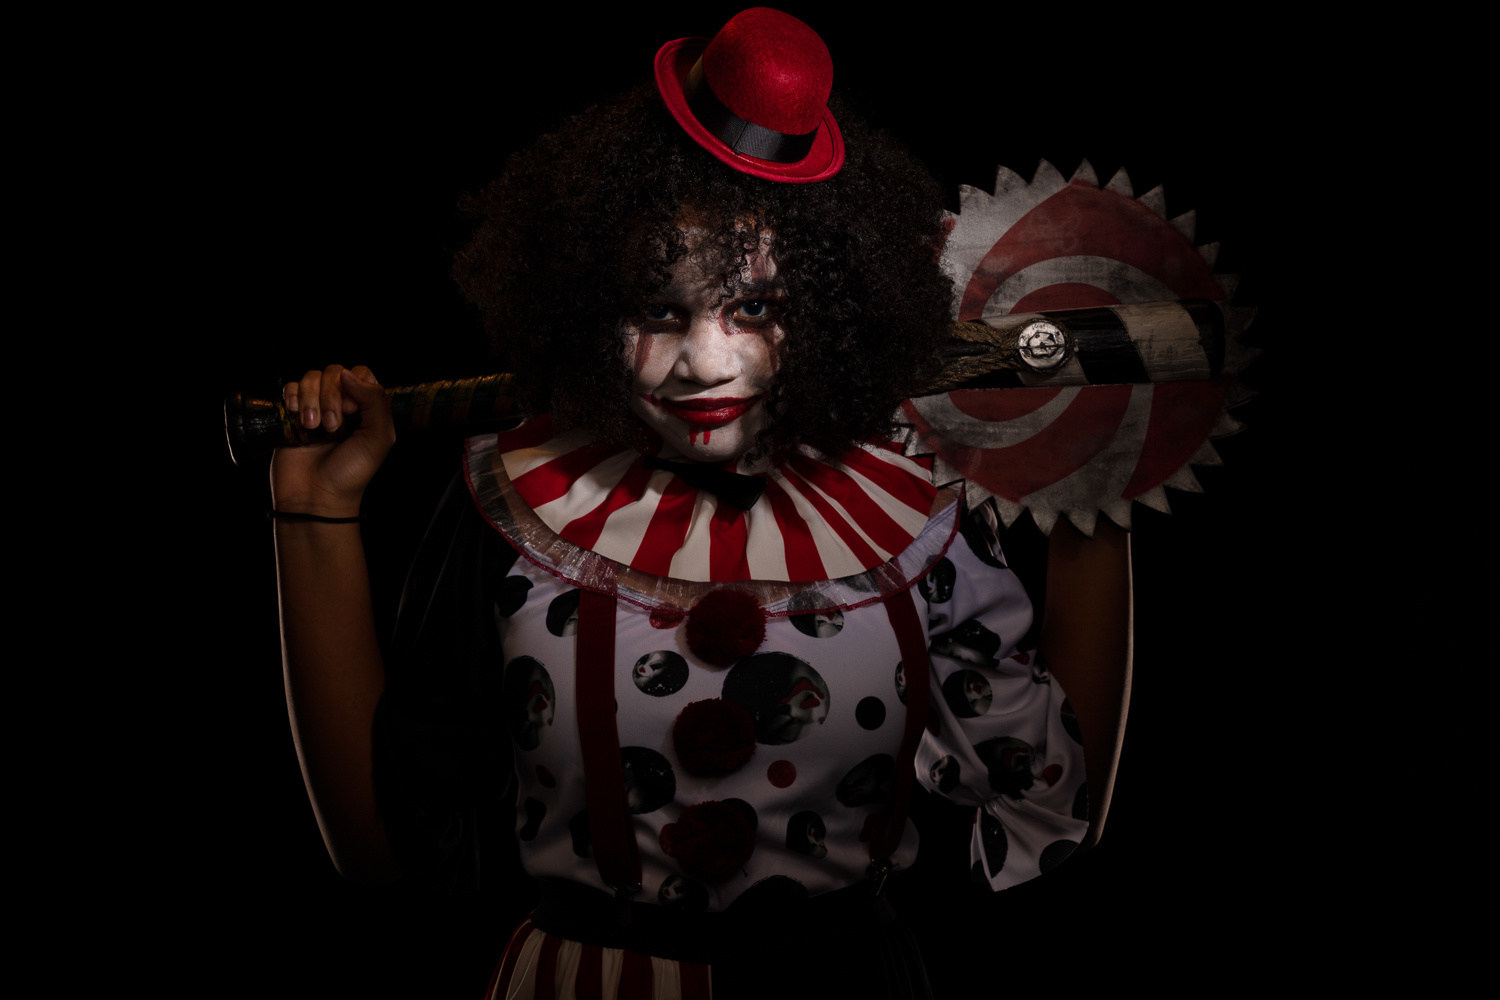 Killer Klown by Rob Lace